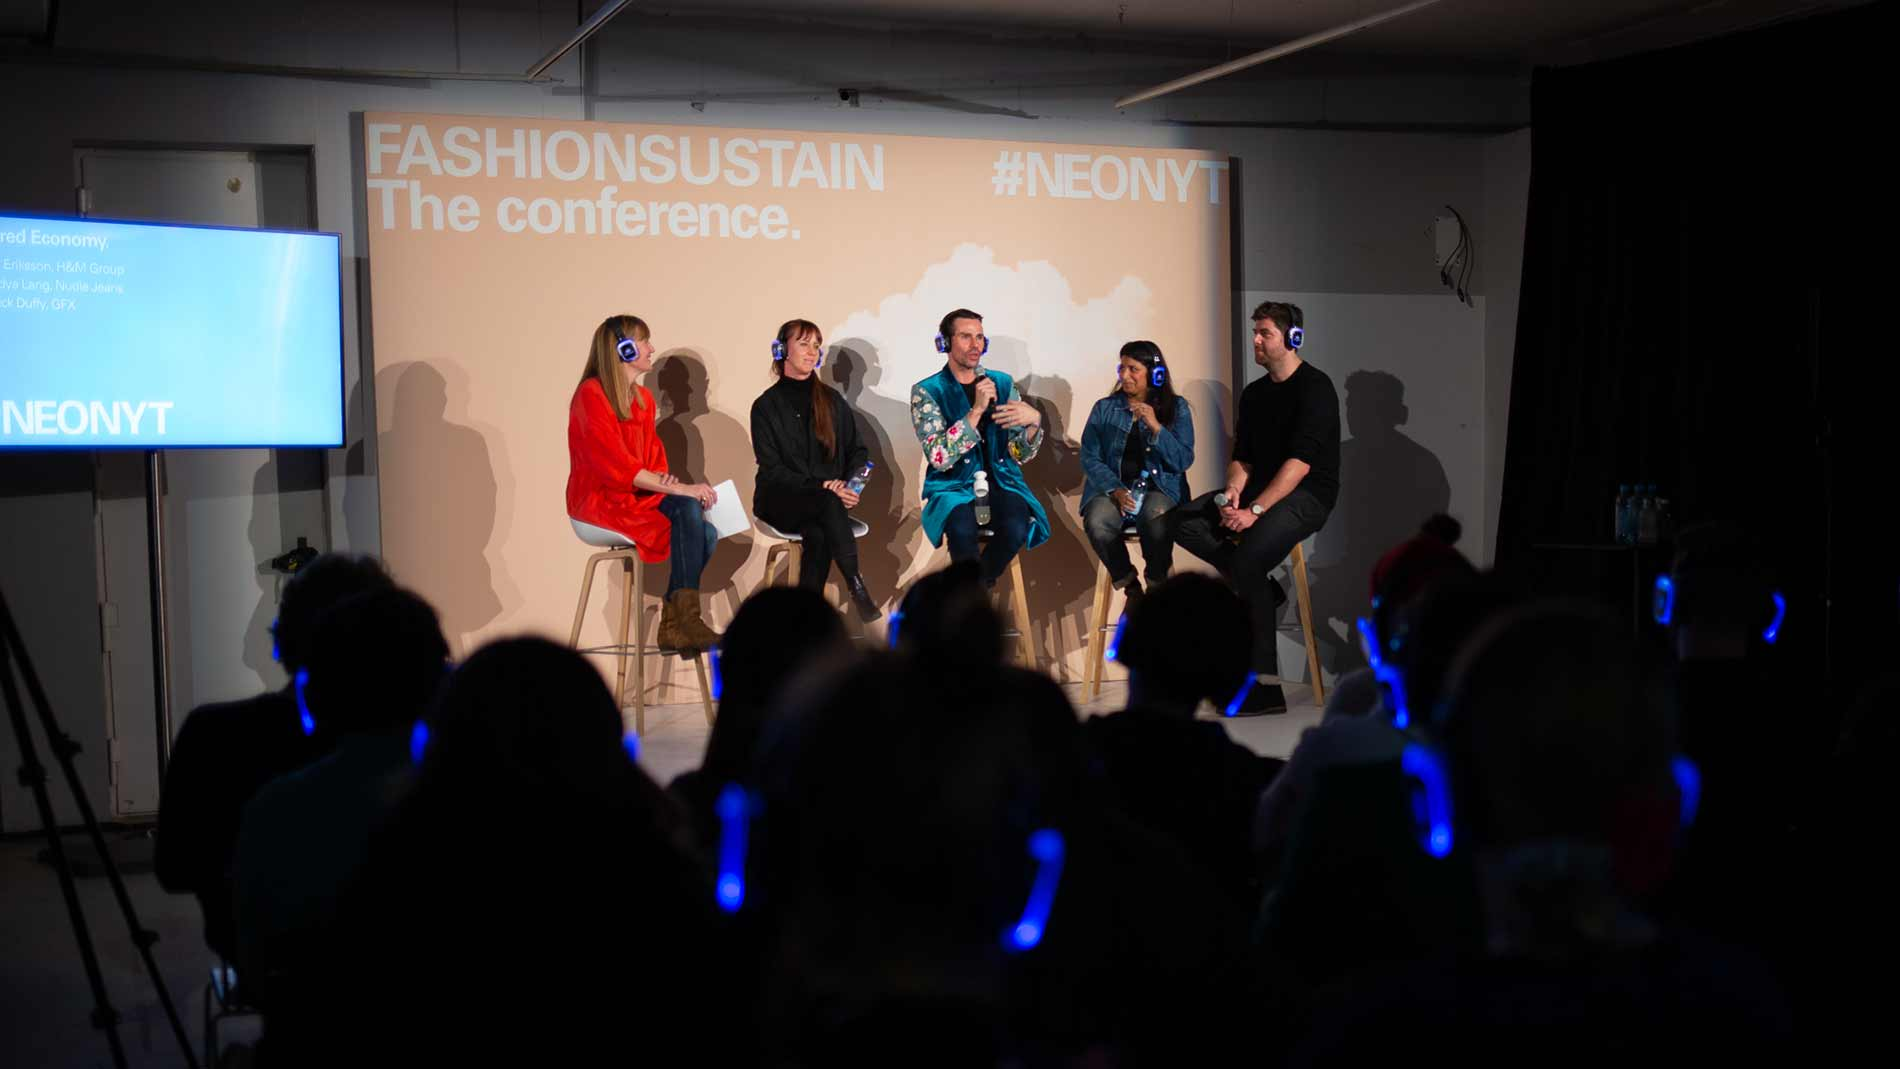 Speakers at Neonyt's conference format Fashionsustain